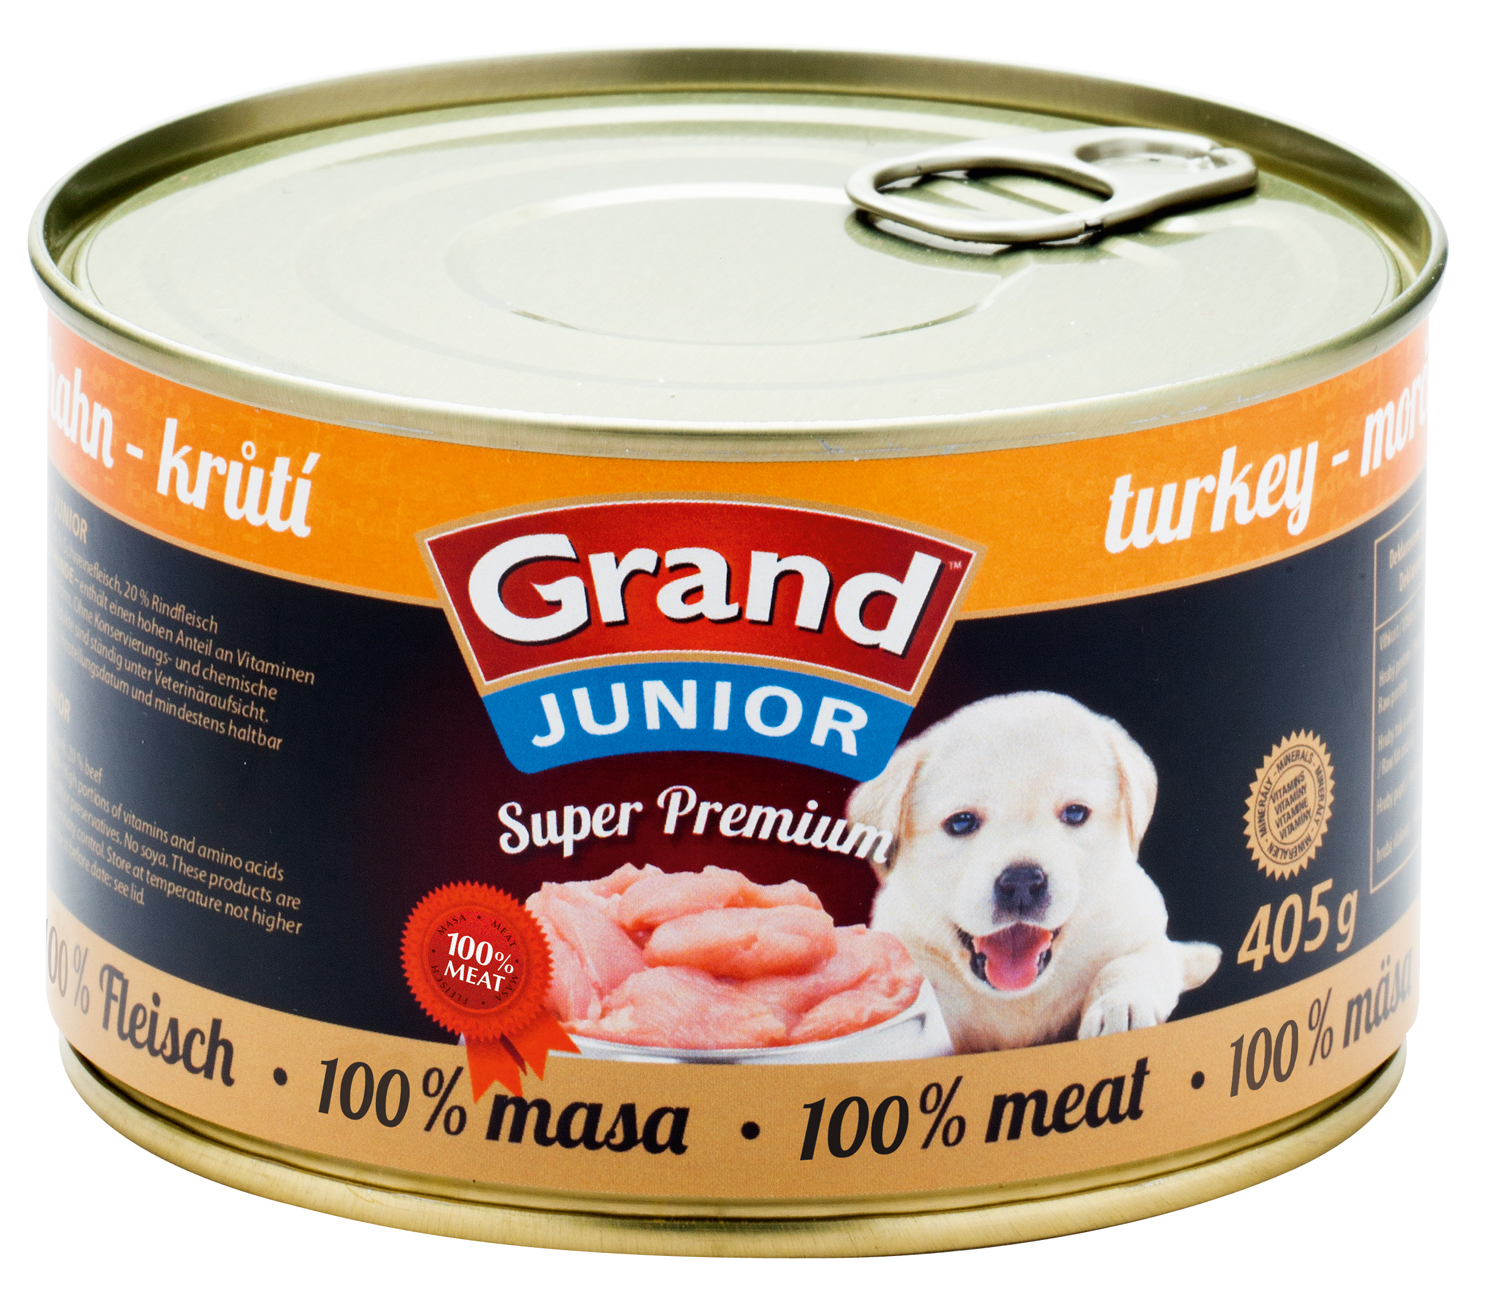 GRAND SuperPremium Krůtí - JUNIOR 405g